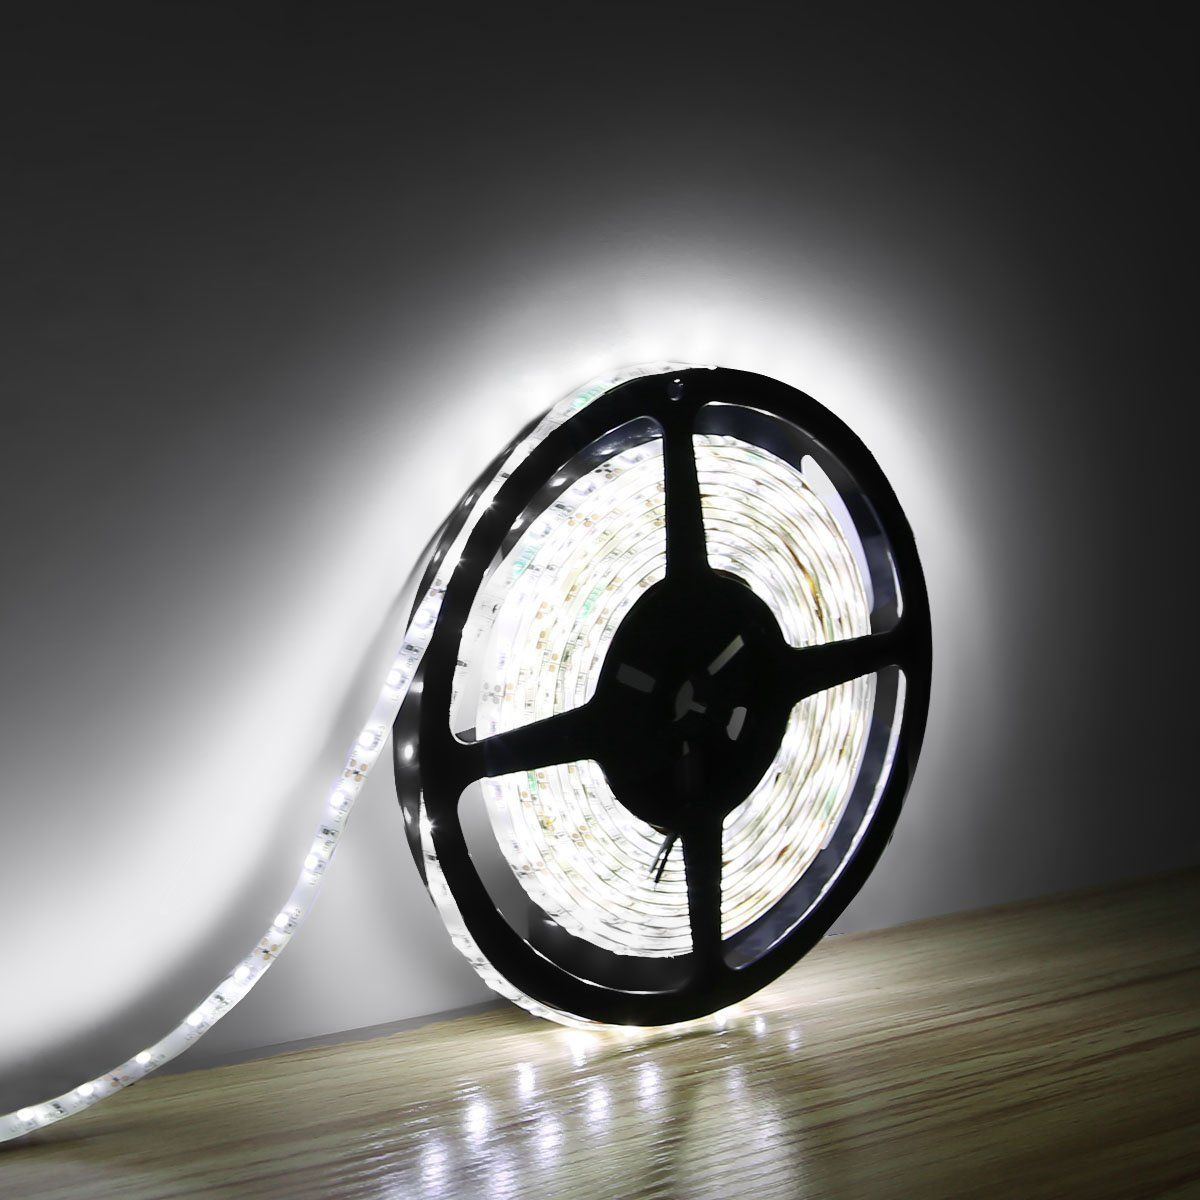 Dodolightness Decoration Strips Light Lampux 12v Flexible Led Strip Lights Yellow Waterproof 300 Flexible Led Strip Lights Led Strip Lighting Strip Lighting